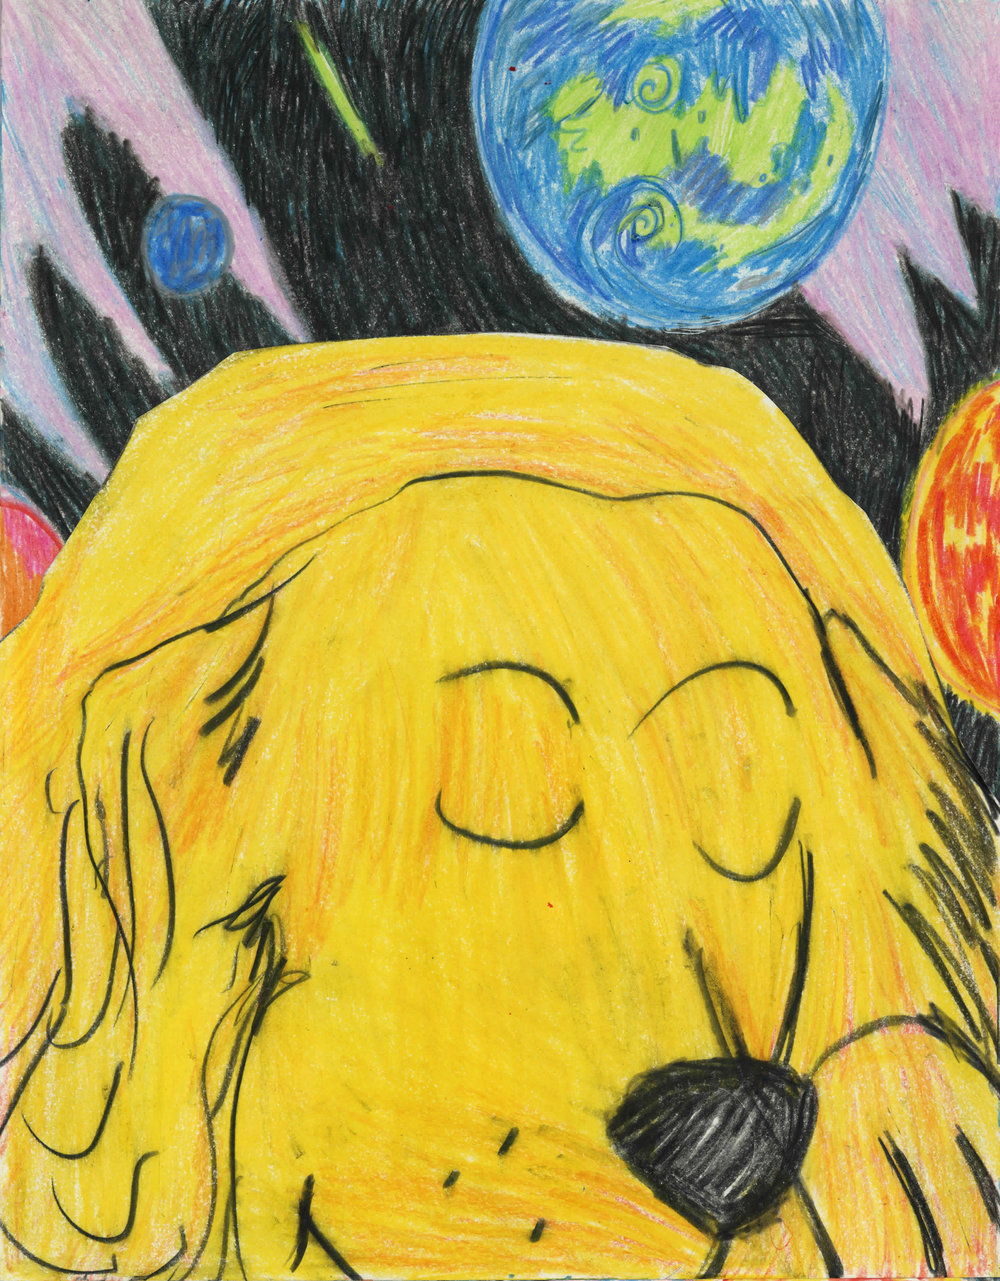 "The Dog Asleep in Space, colored pencil and collage on paper, 11"" x 14"", 2017"